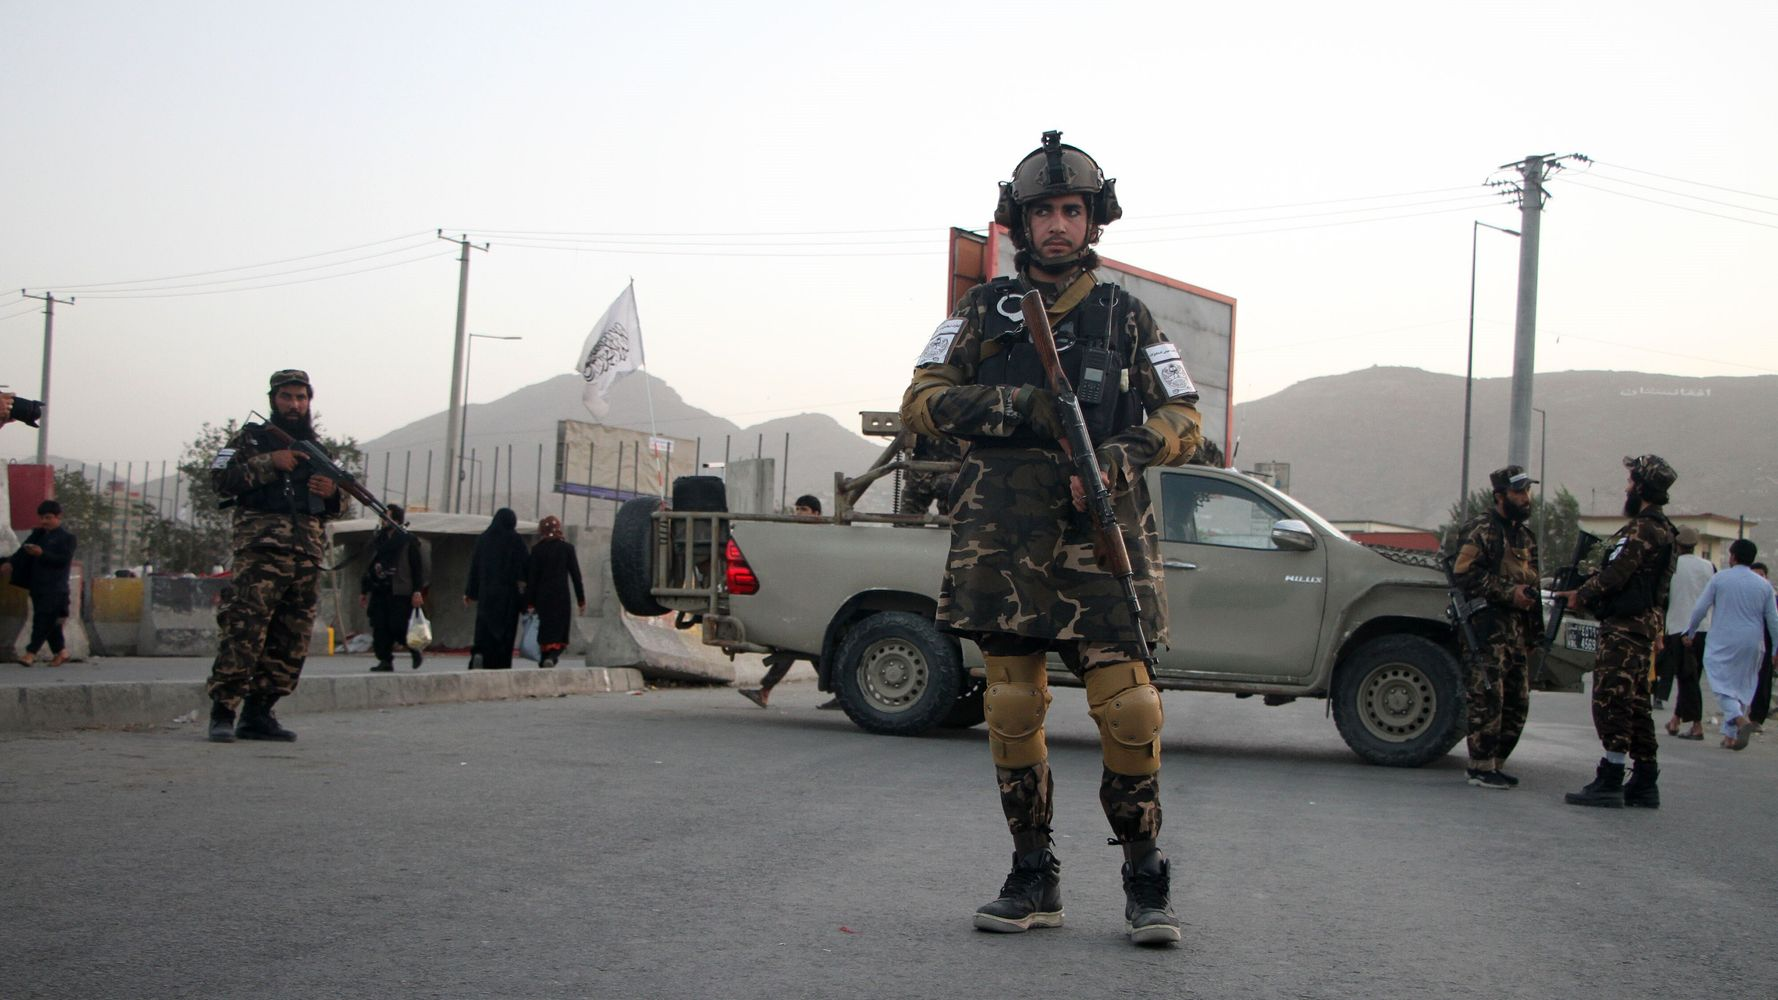 Taliban Say They Won't Work With U.S. On Shared Islamic State Threat